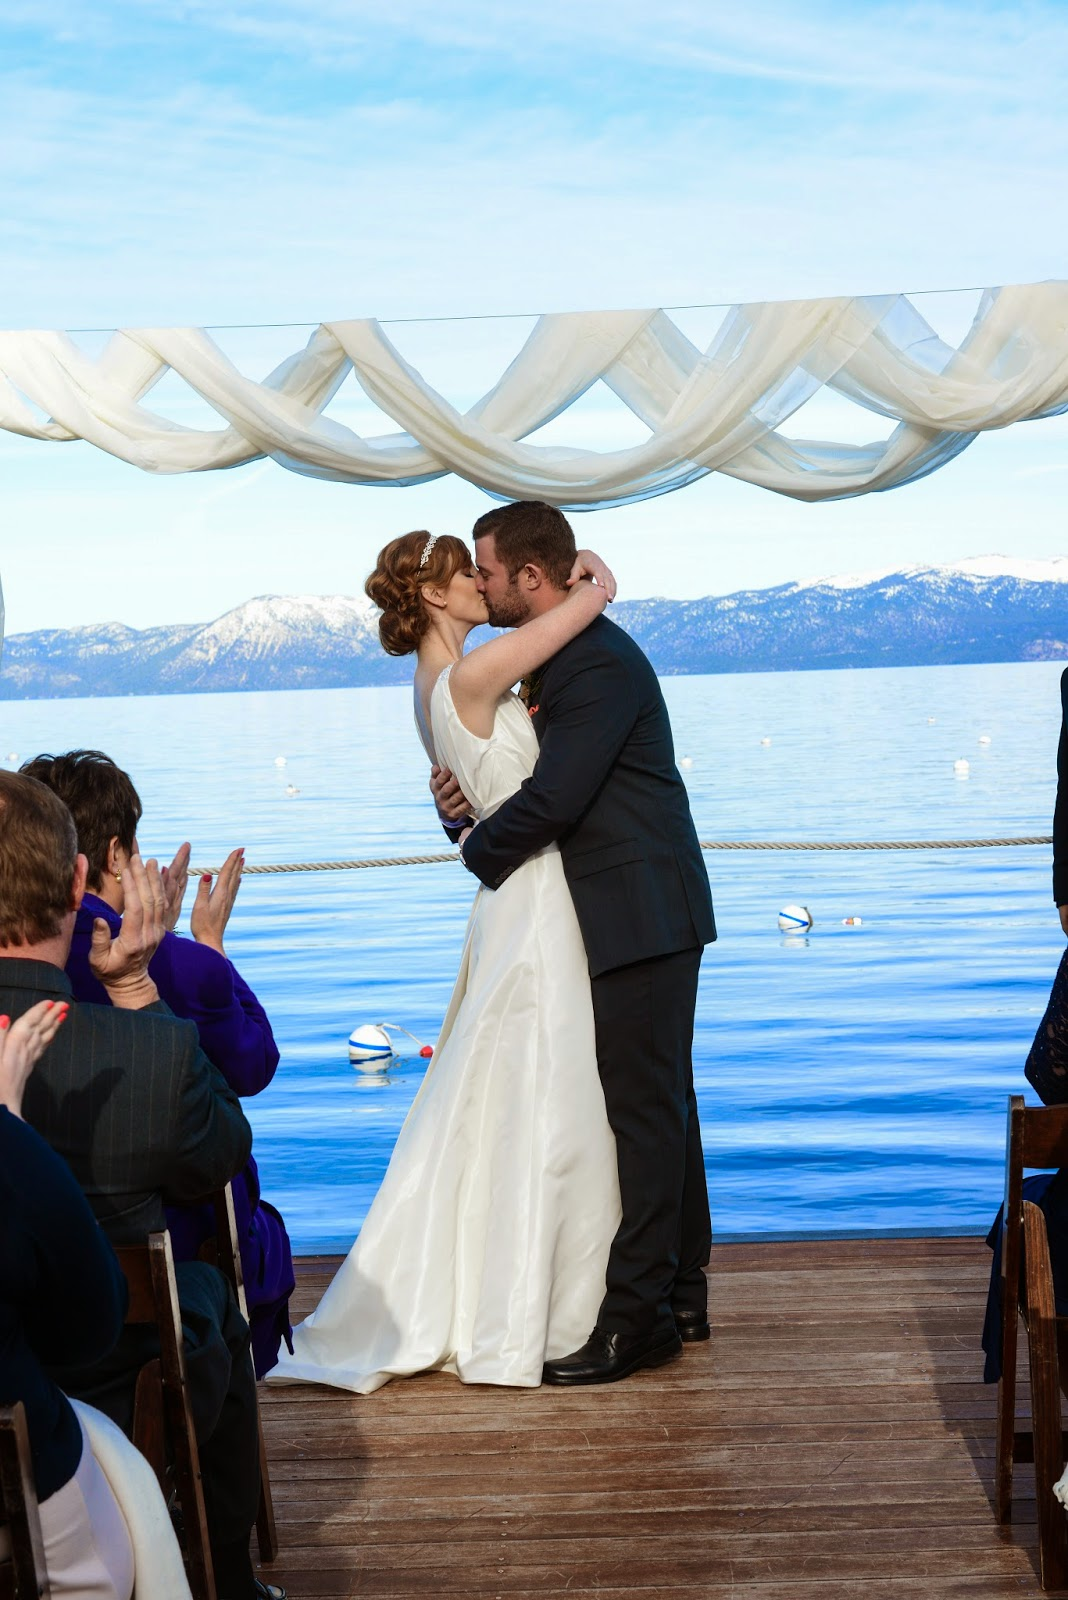 Lake Tahoe Pier Wedding Ceremony / Photo by Jade Studios / Take the Cake Event Planning